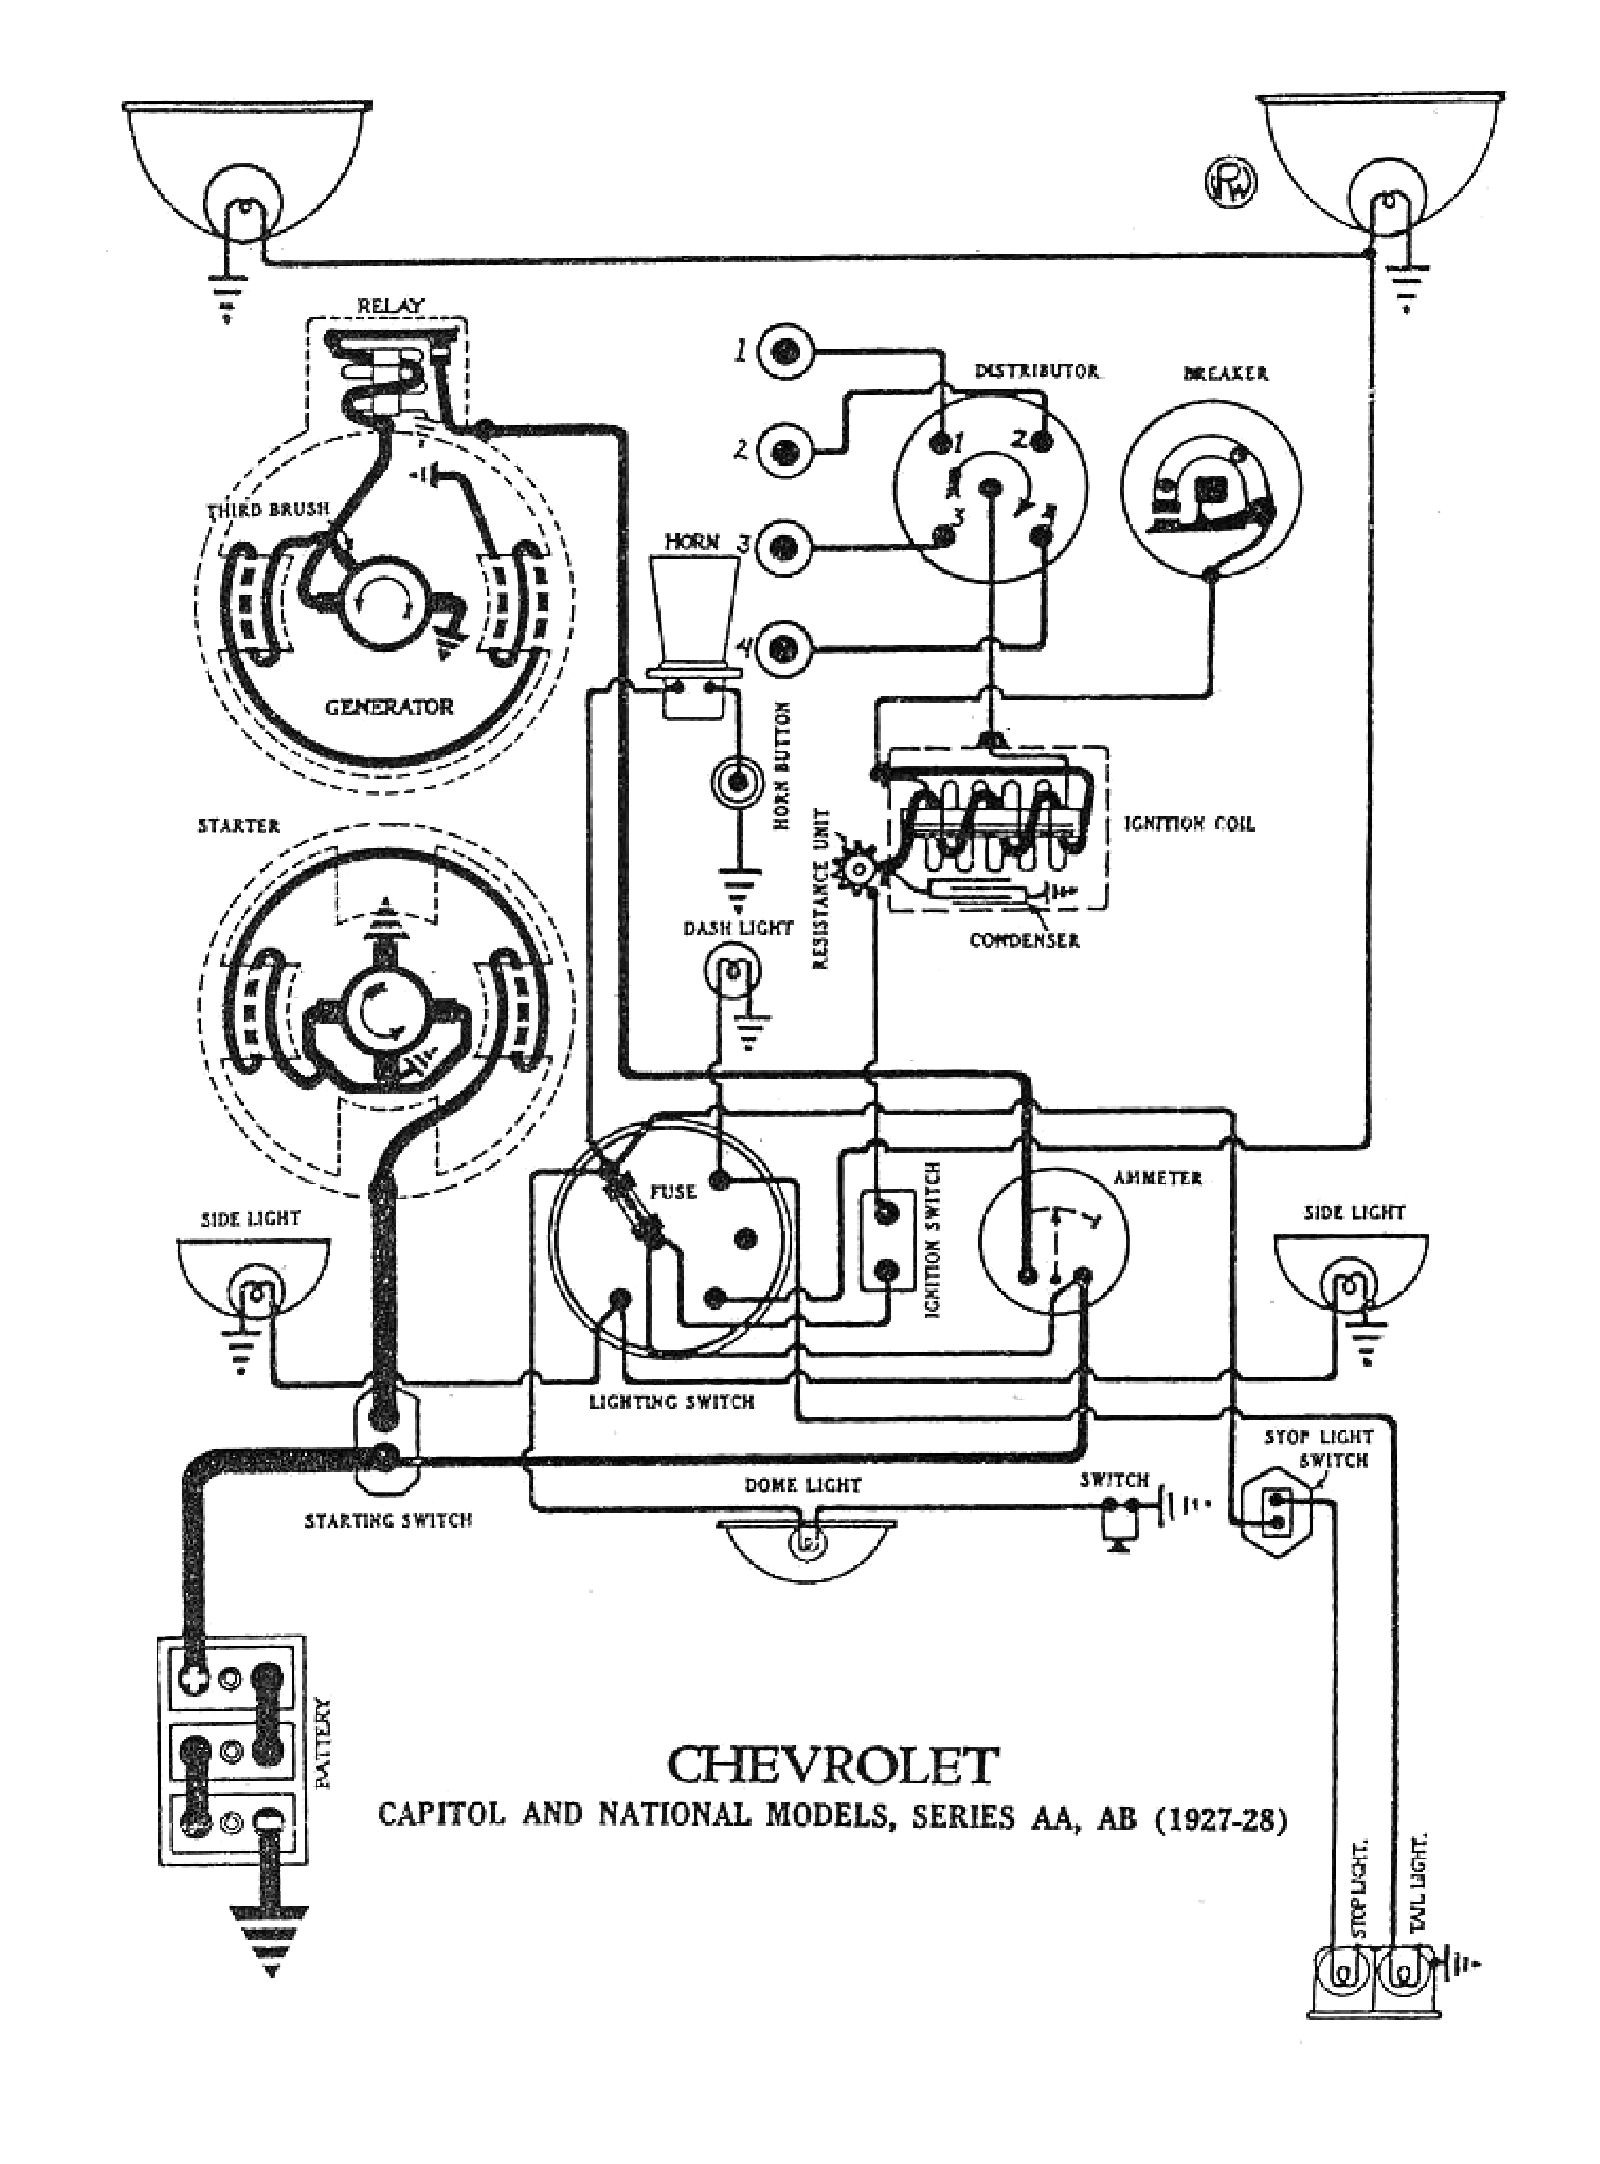 Chevy S10 Engine Diagram Wiring Diagrams Of Chevy S10 Engine Diagram